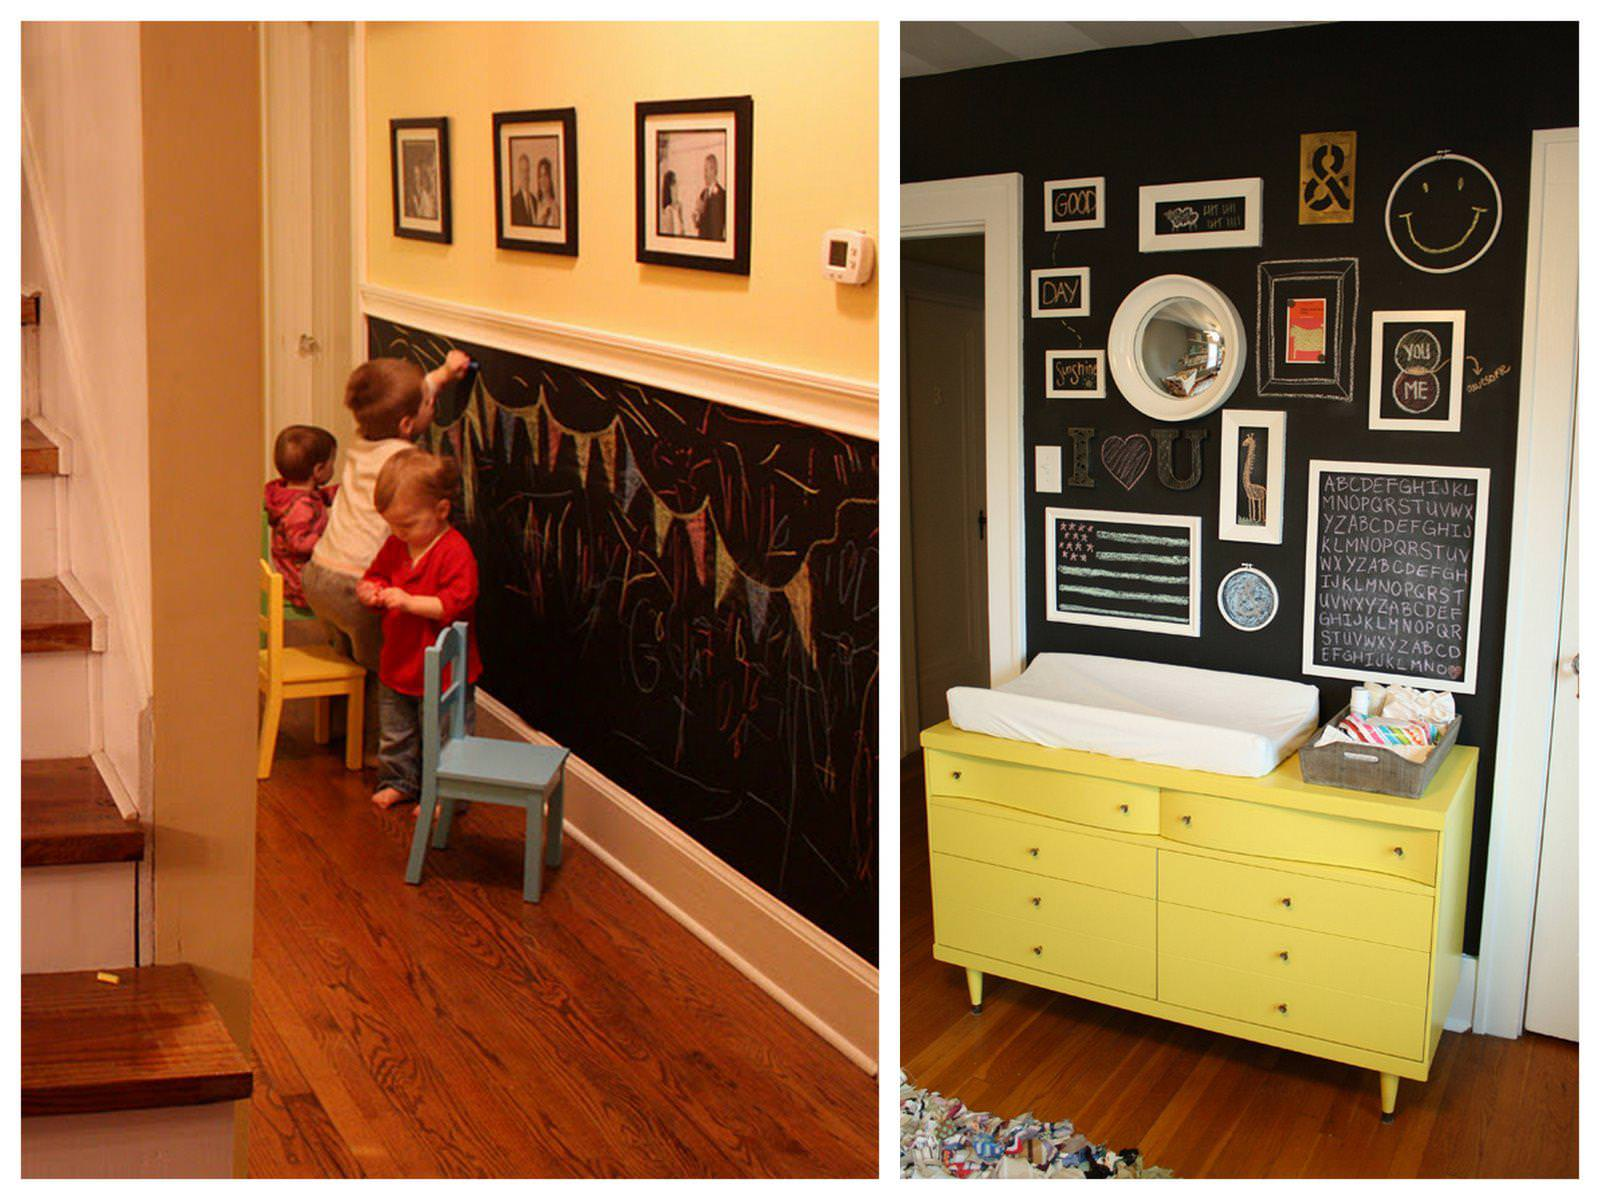 chalkboard paint ideas also decorating with chalkboard paint also chalk paints brands